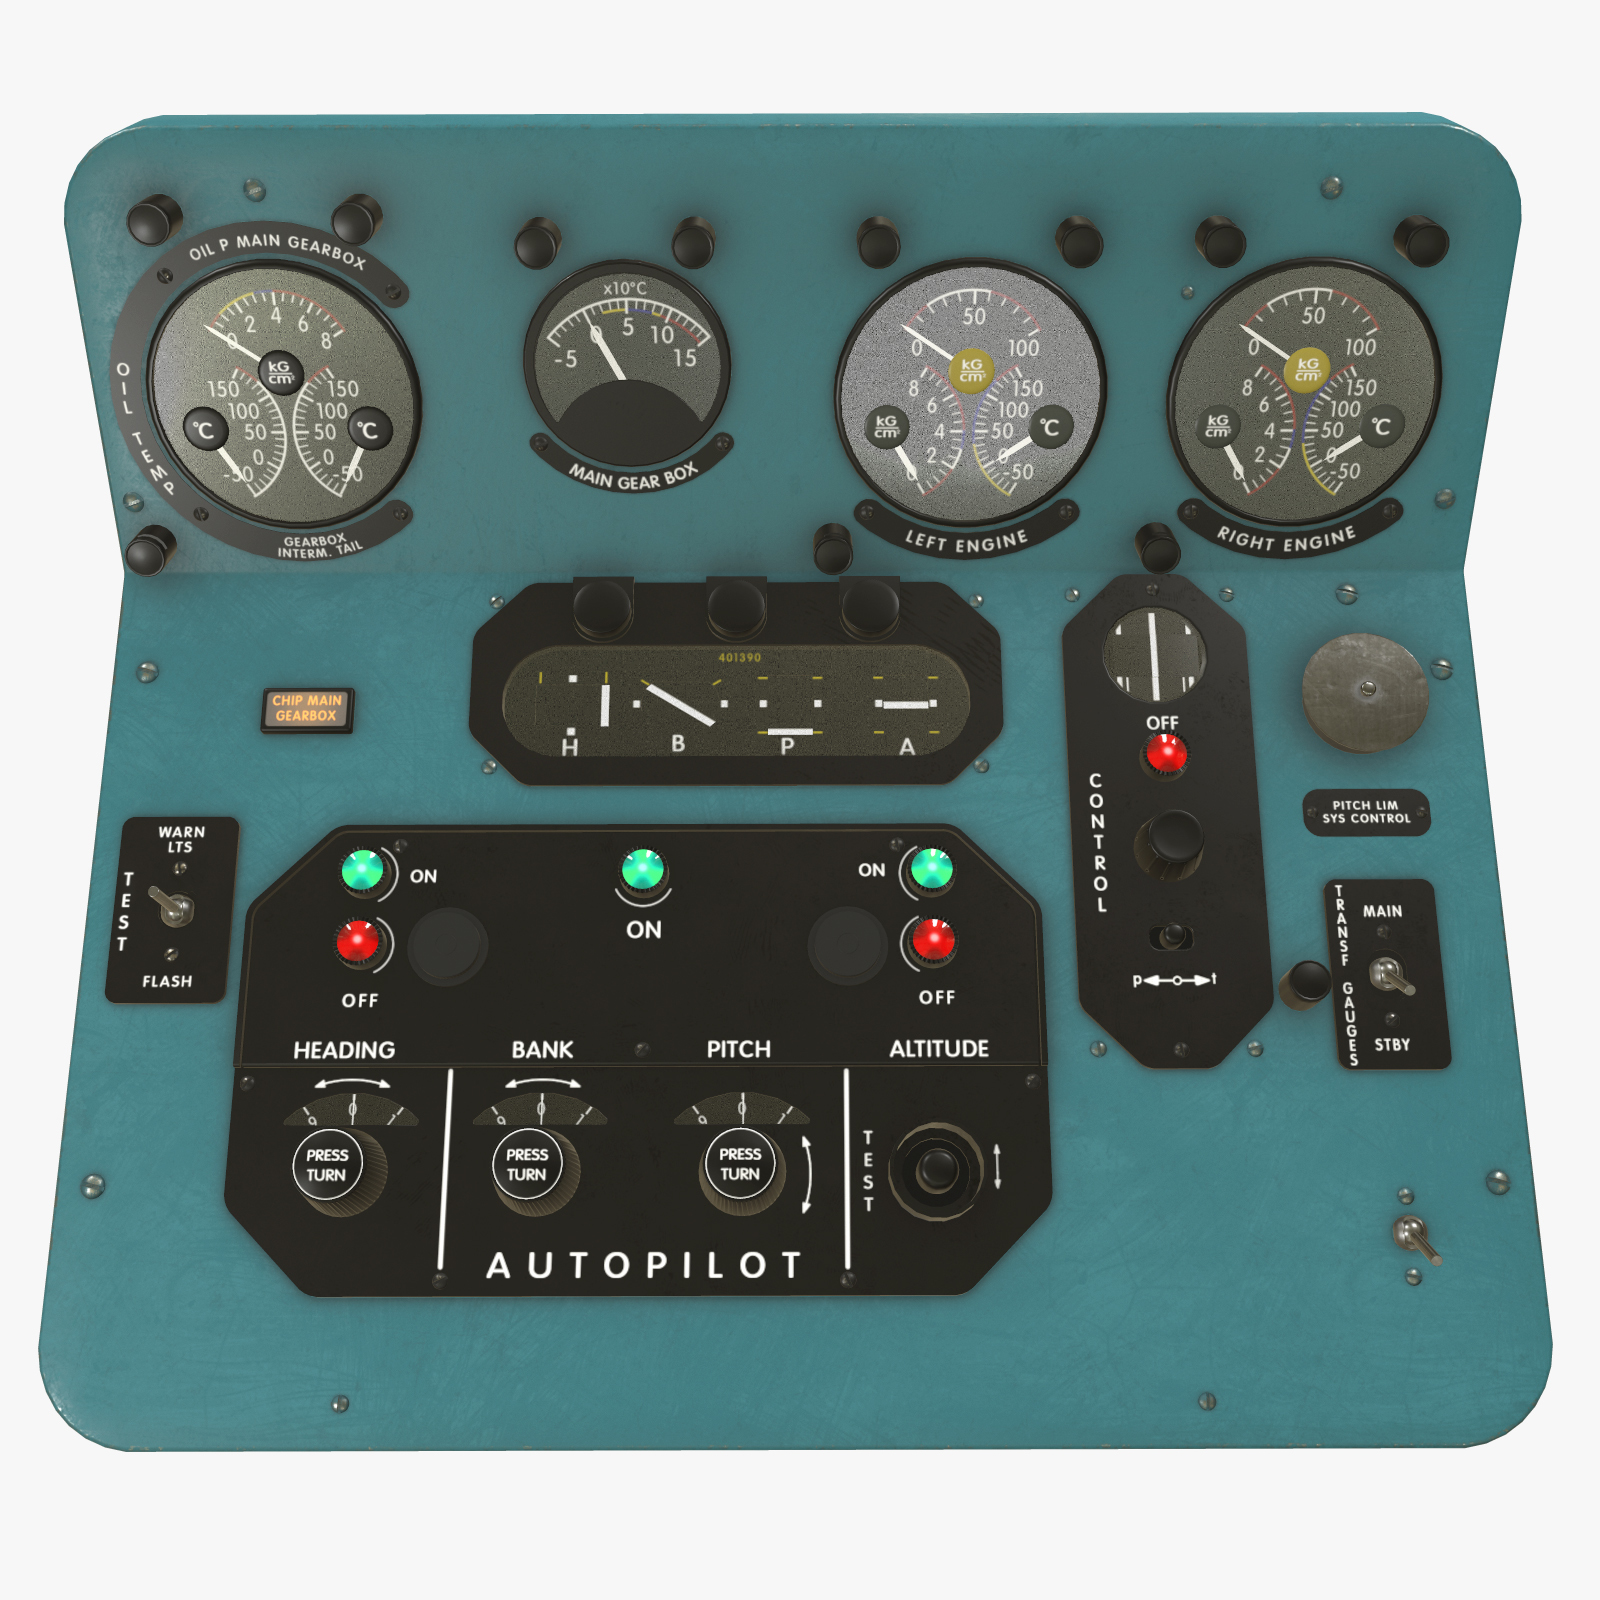 Mi-8MT Mi-17MT Central Panels Board English - Extended License by pukamakara